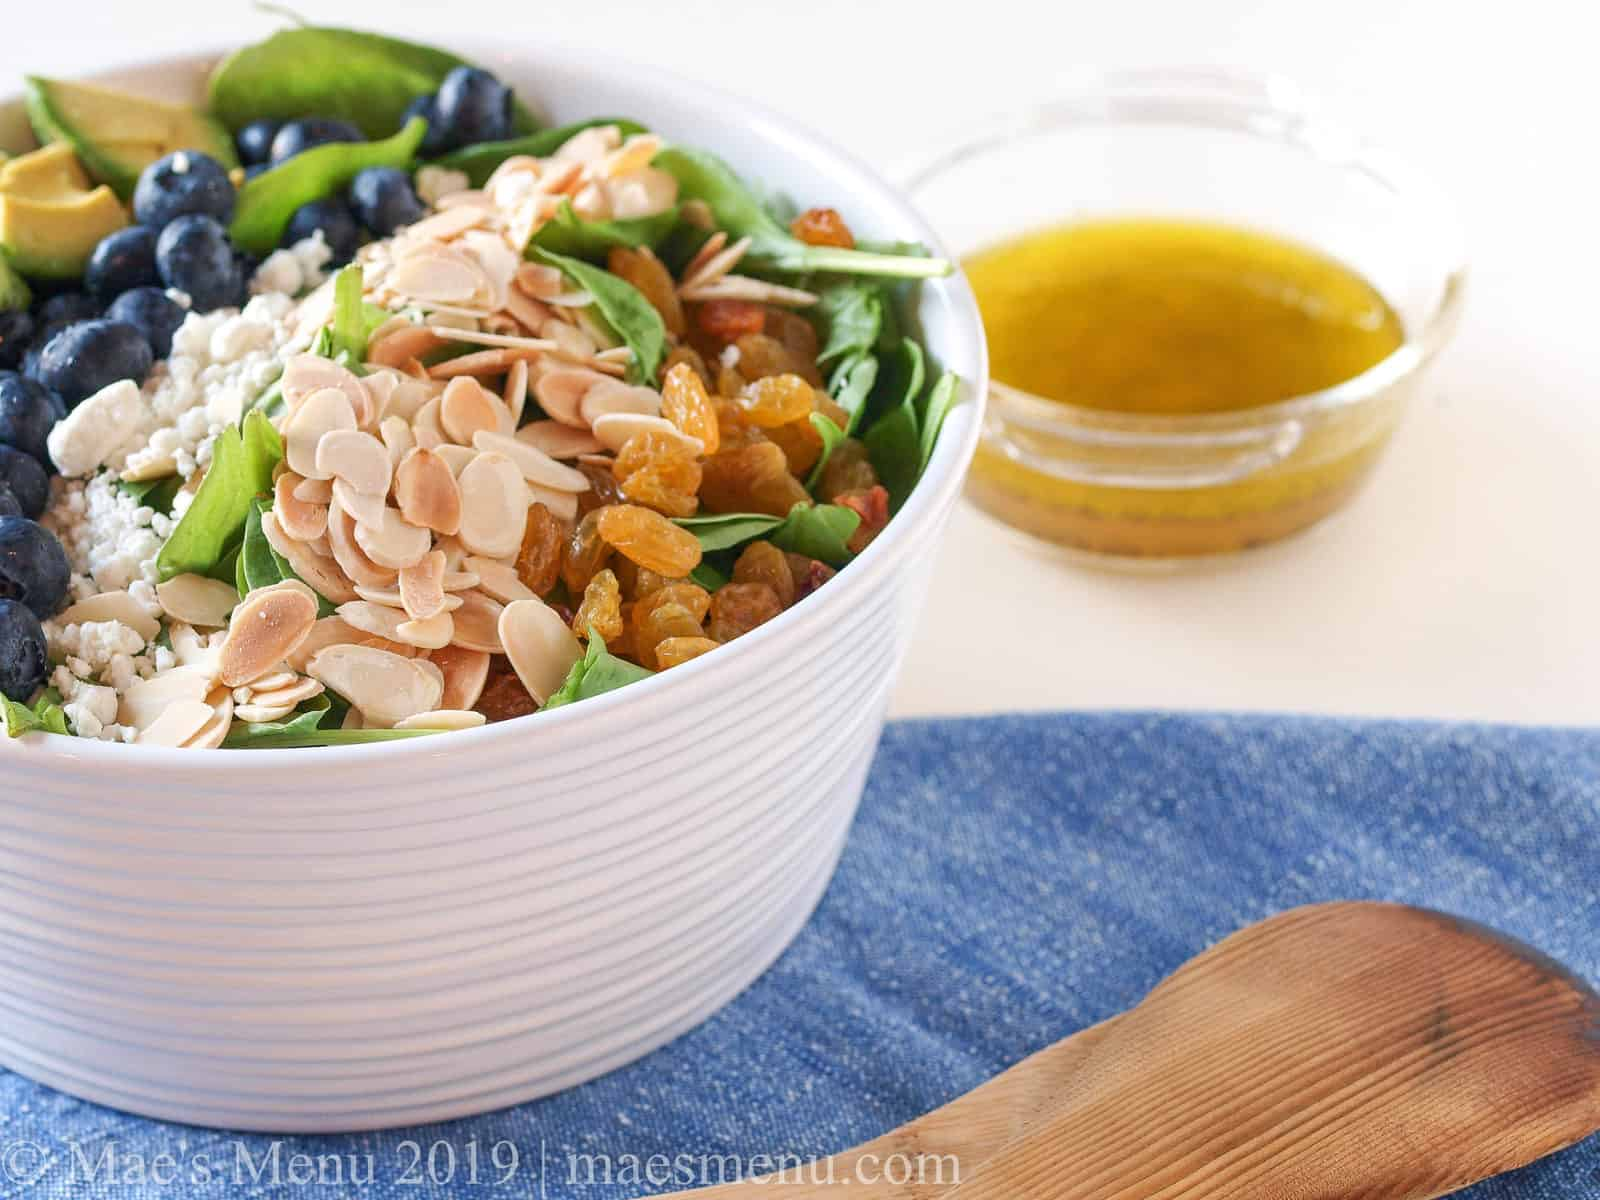 A large white bowl of blueberry spinach salad.